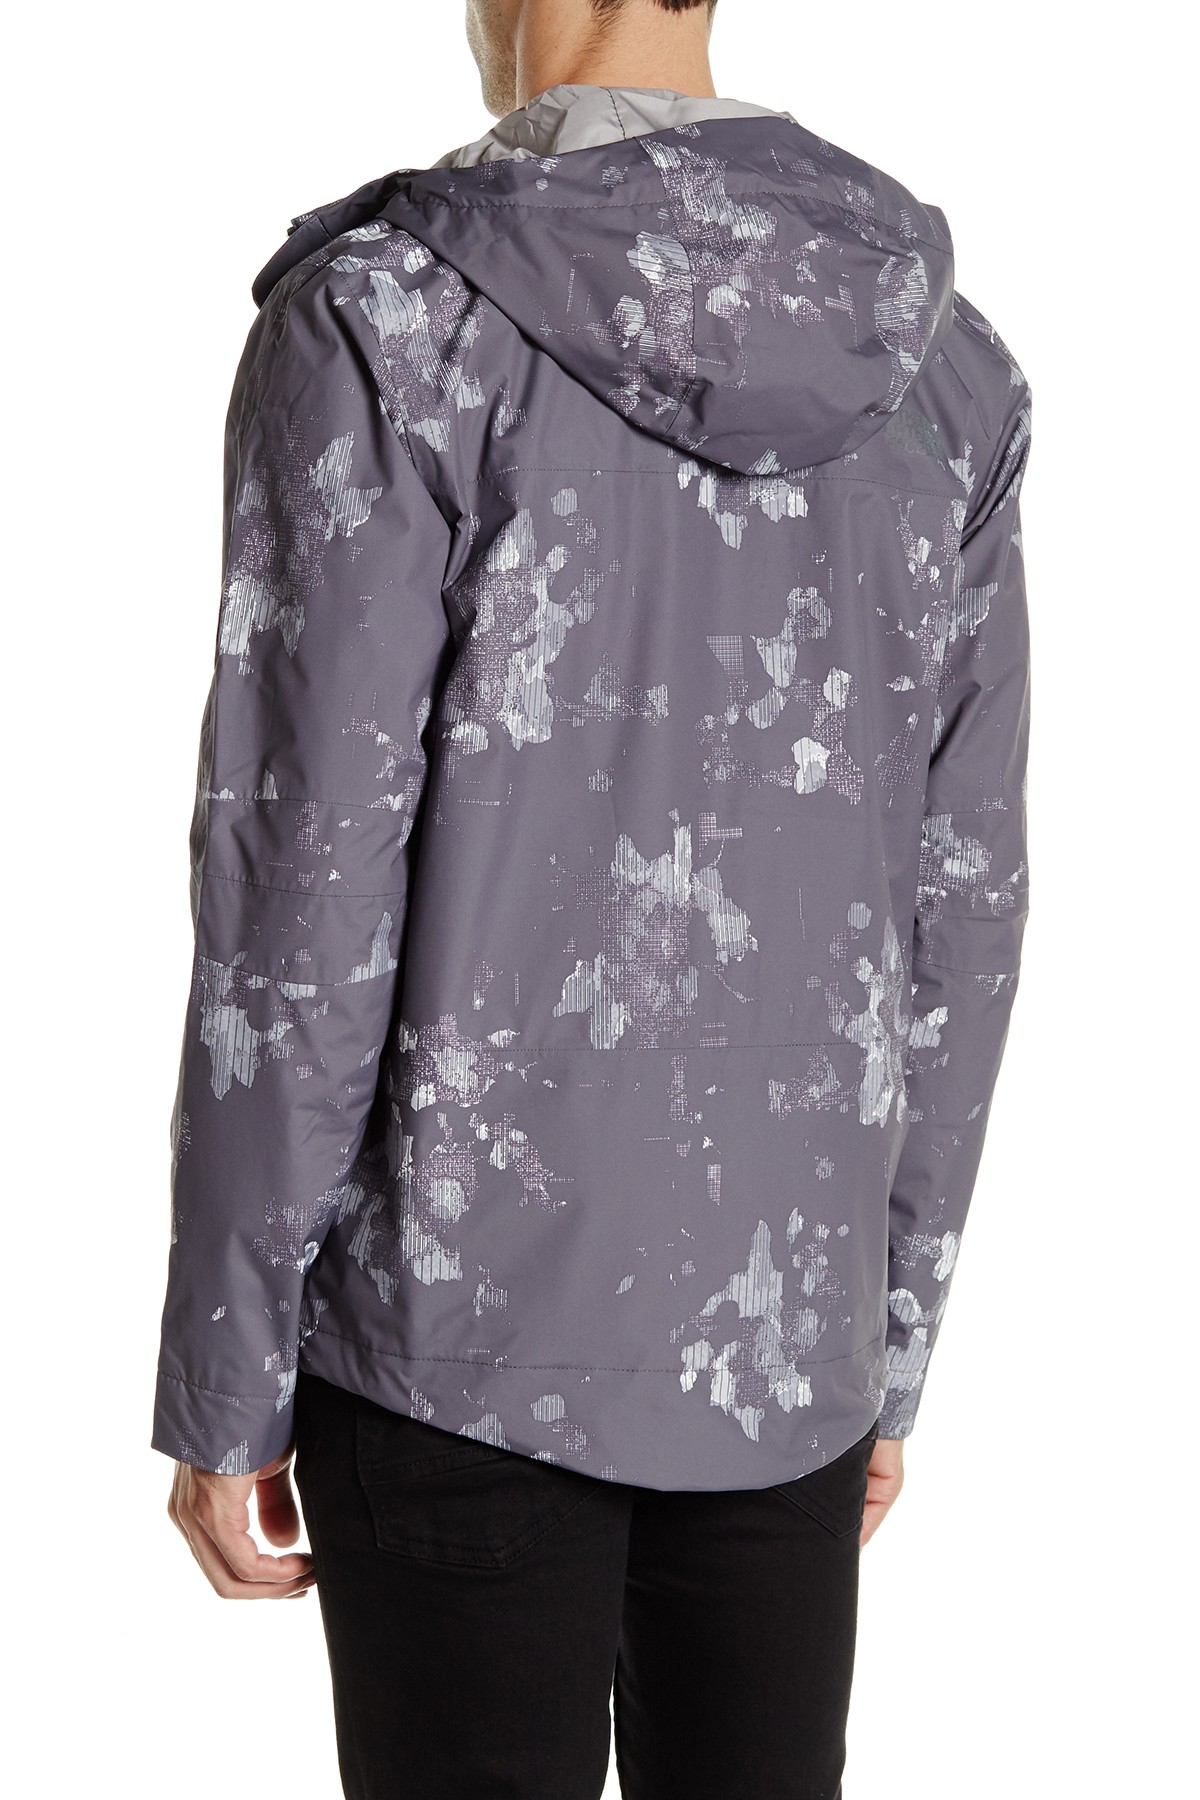 0a63302f7 france the north face fast drying jackets costco online 09dcd 62668